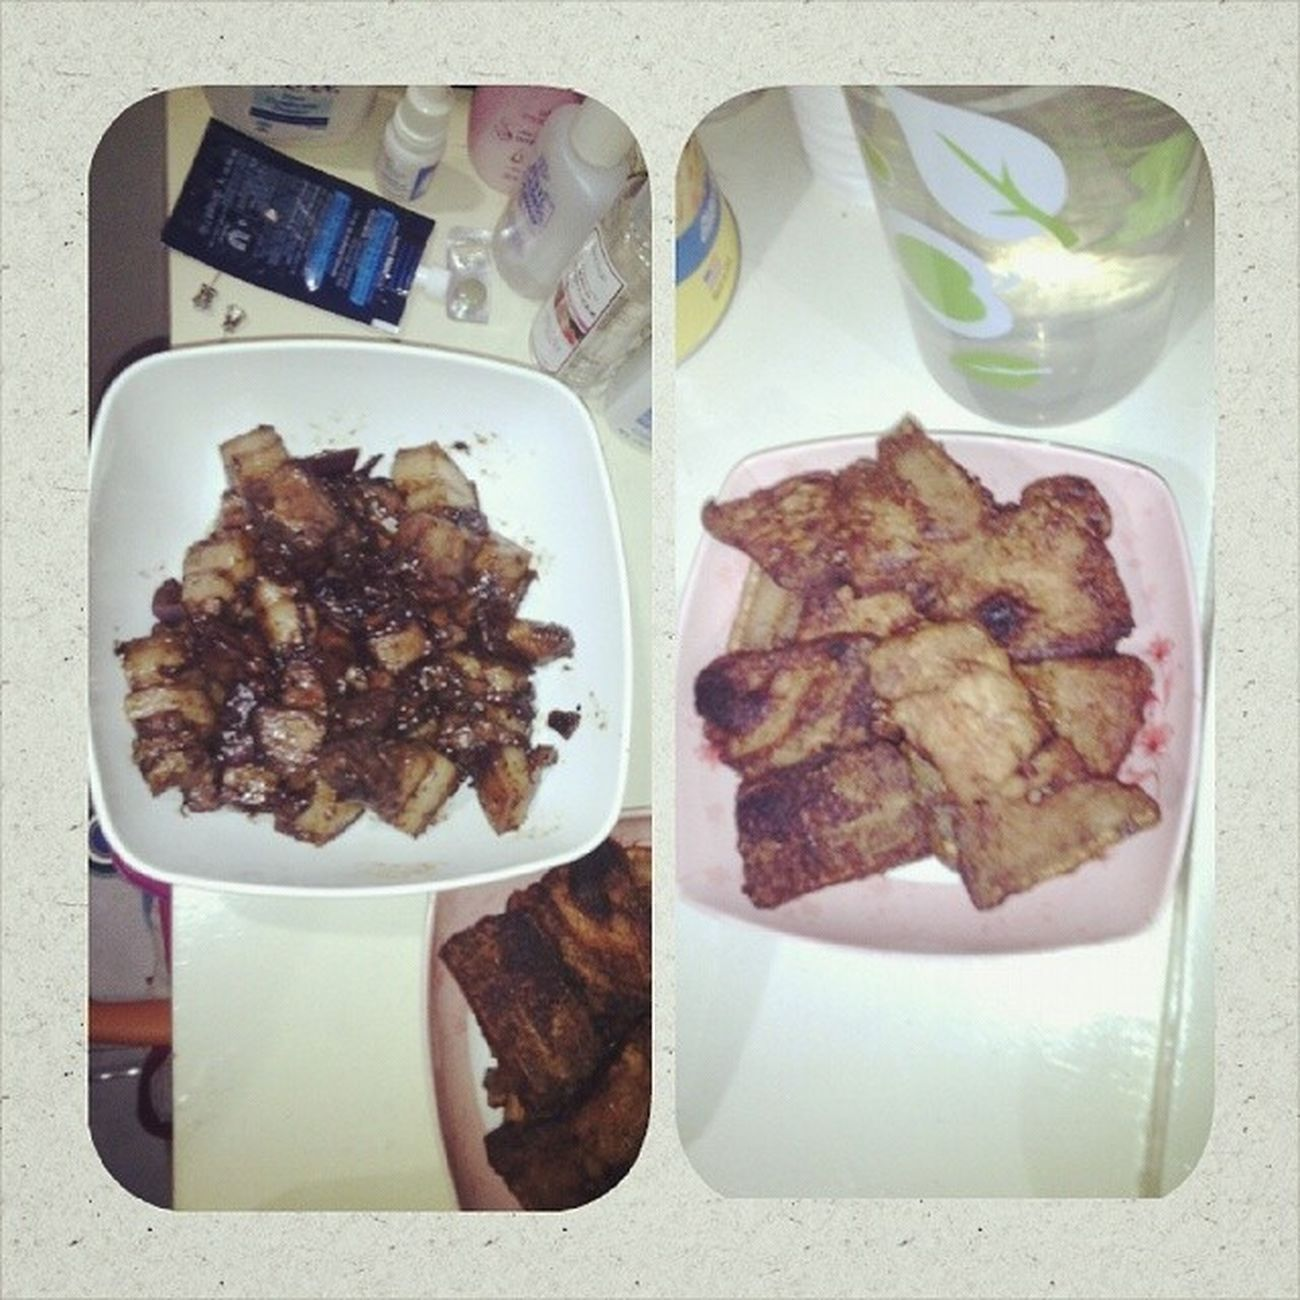 DONE COOKING FOR DINNER 😄👍🐷🍴 Porkadobo DeepFriedPork PangpaHighblood Lol😹 Dinner Goodevening